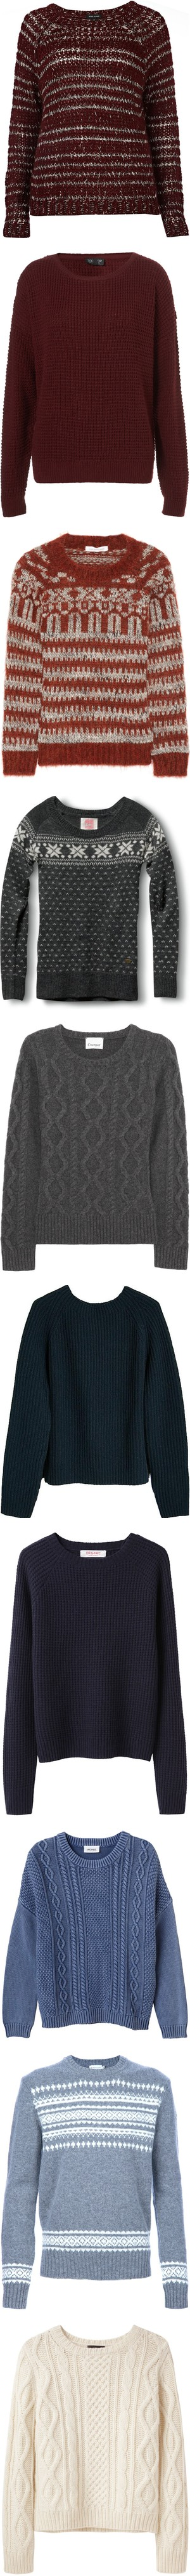 """Vintage Jumpers"" by hopes-and-fears ❤ liked on Polyvore"